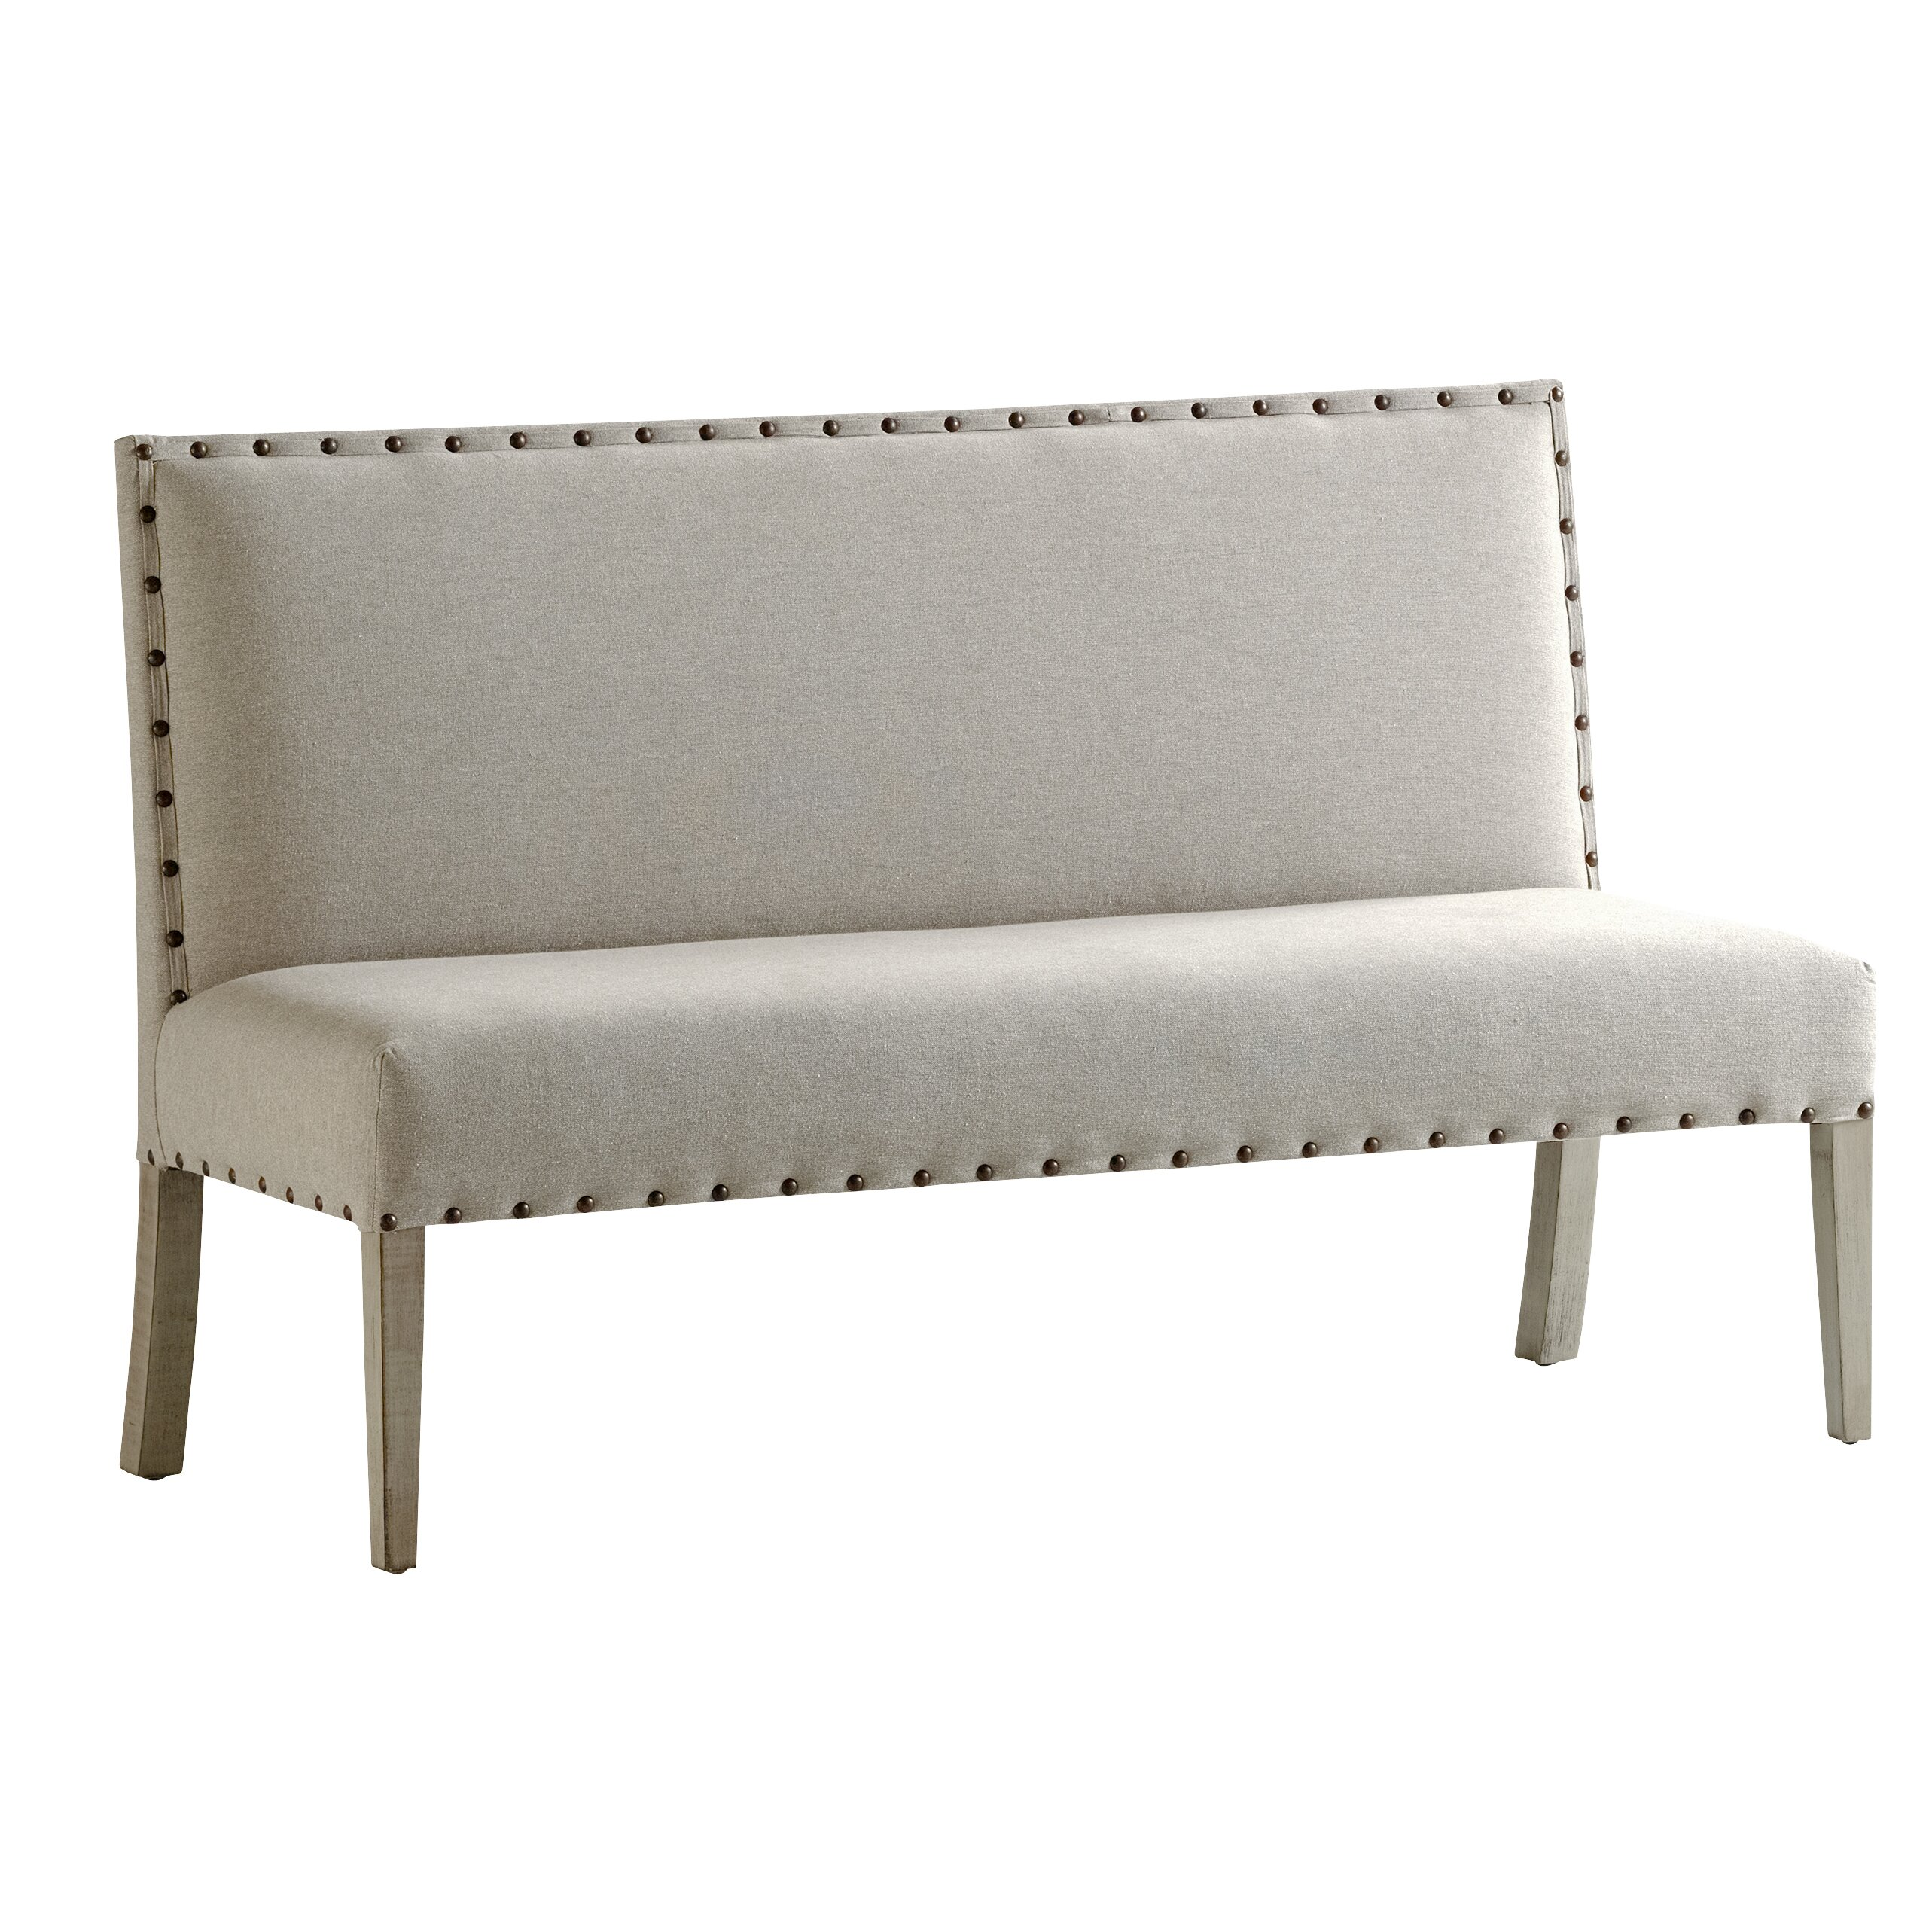 Rive Gauche Upholstered Kitchen Bench Wayfair